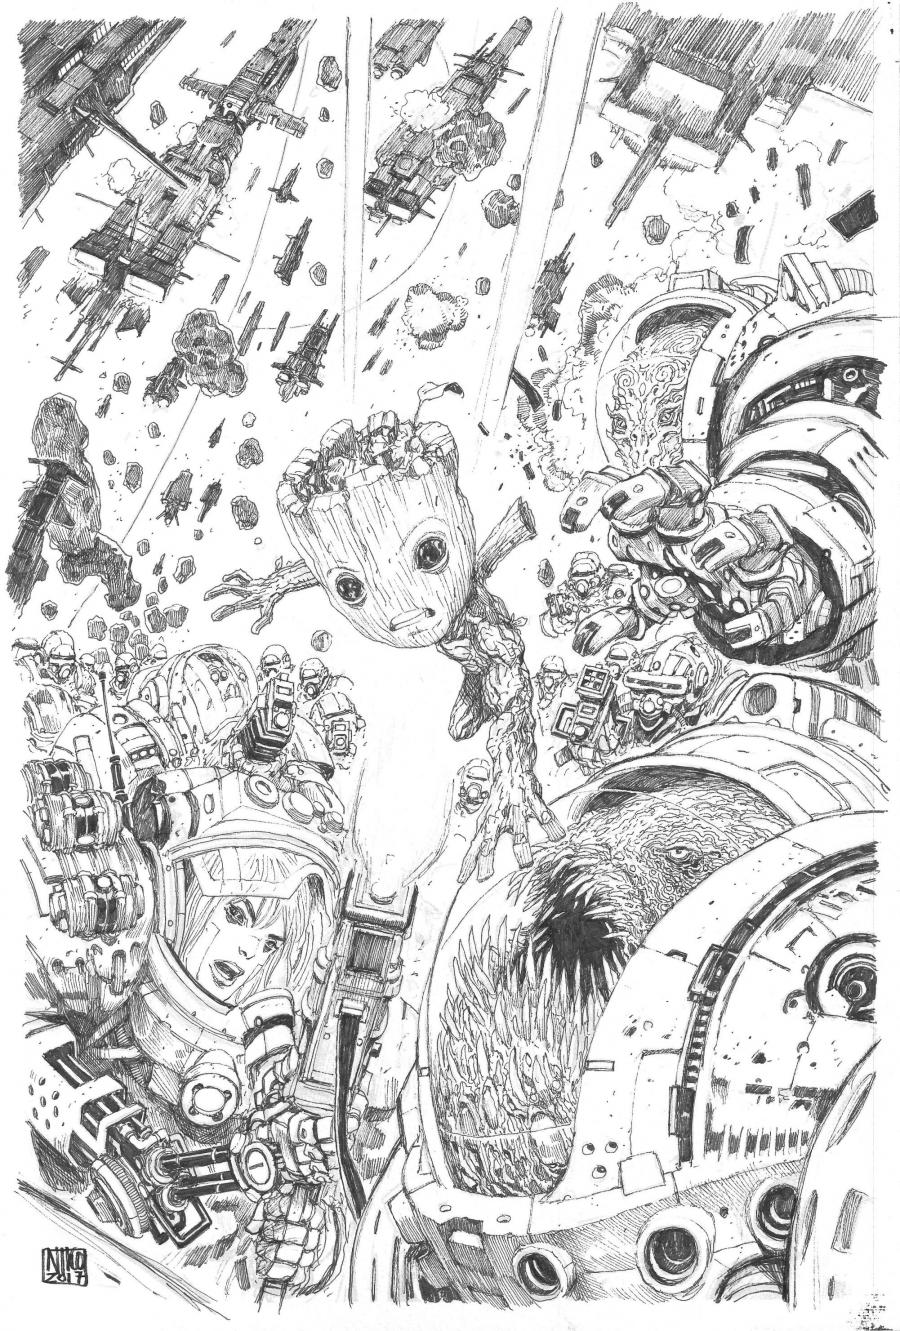 Original Comics illustration, Napoleon Gallery : MARVEL - Original cover THE GUARDIANS OF THE GALAXY : I am Groot by Niko HENRICHON - cover